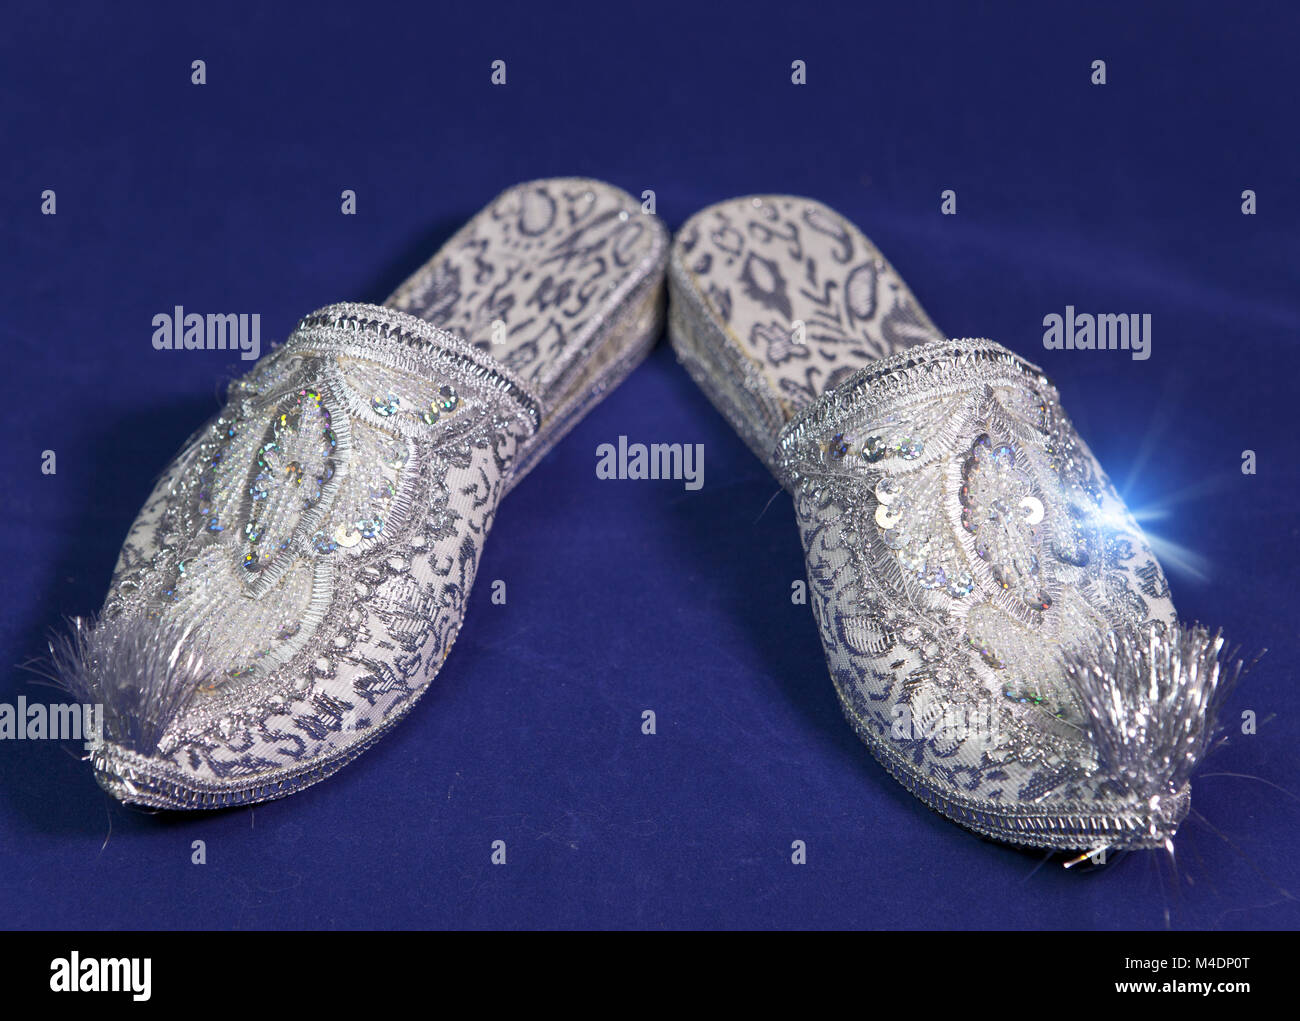 east style bride shoes on a blue velvet - Stock Image